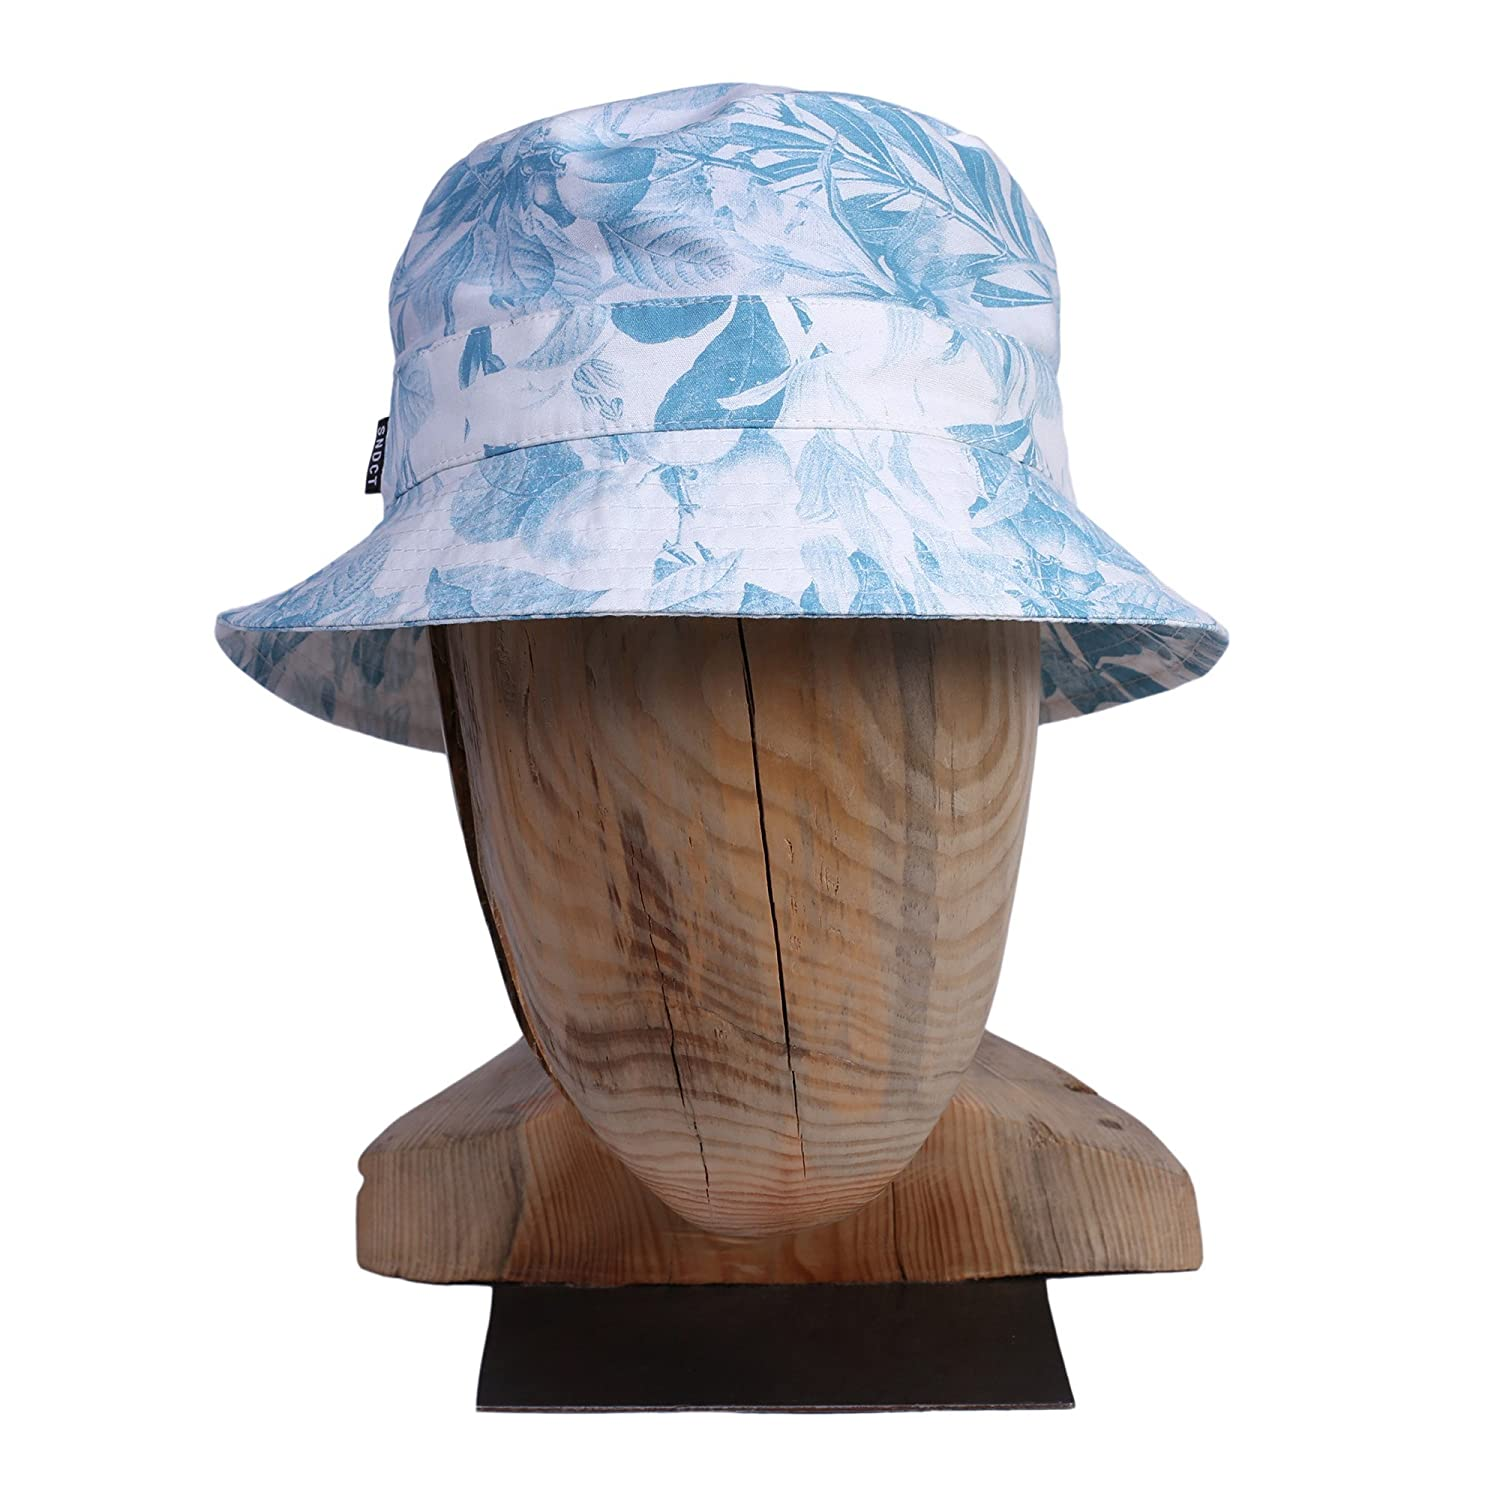 71e704d8f30ea Floral Bucket Hat by Syndicate Original at Amazon Men s Clothing store